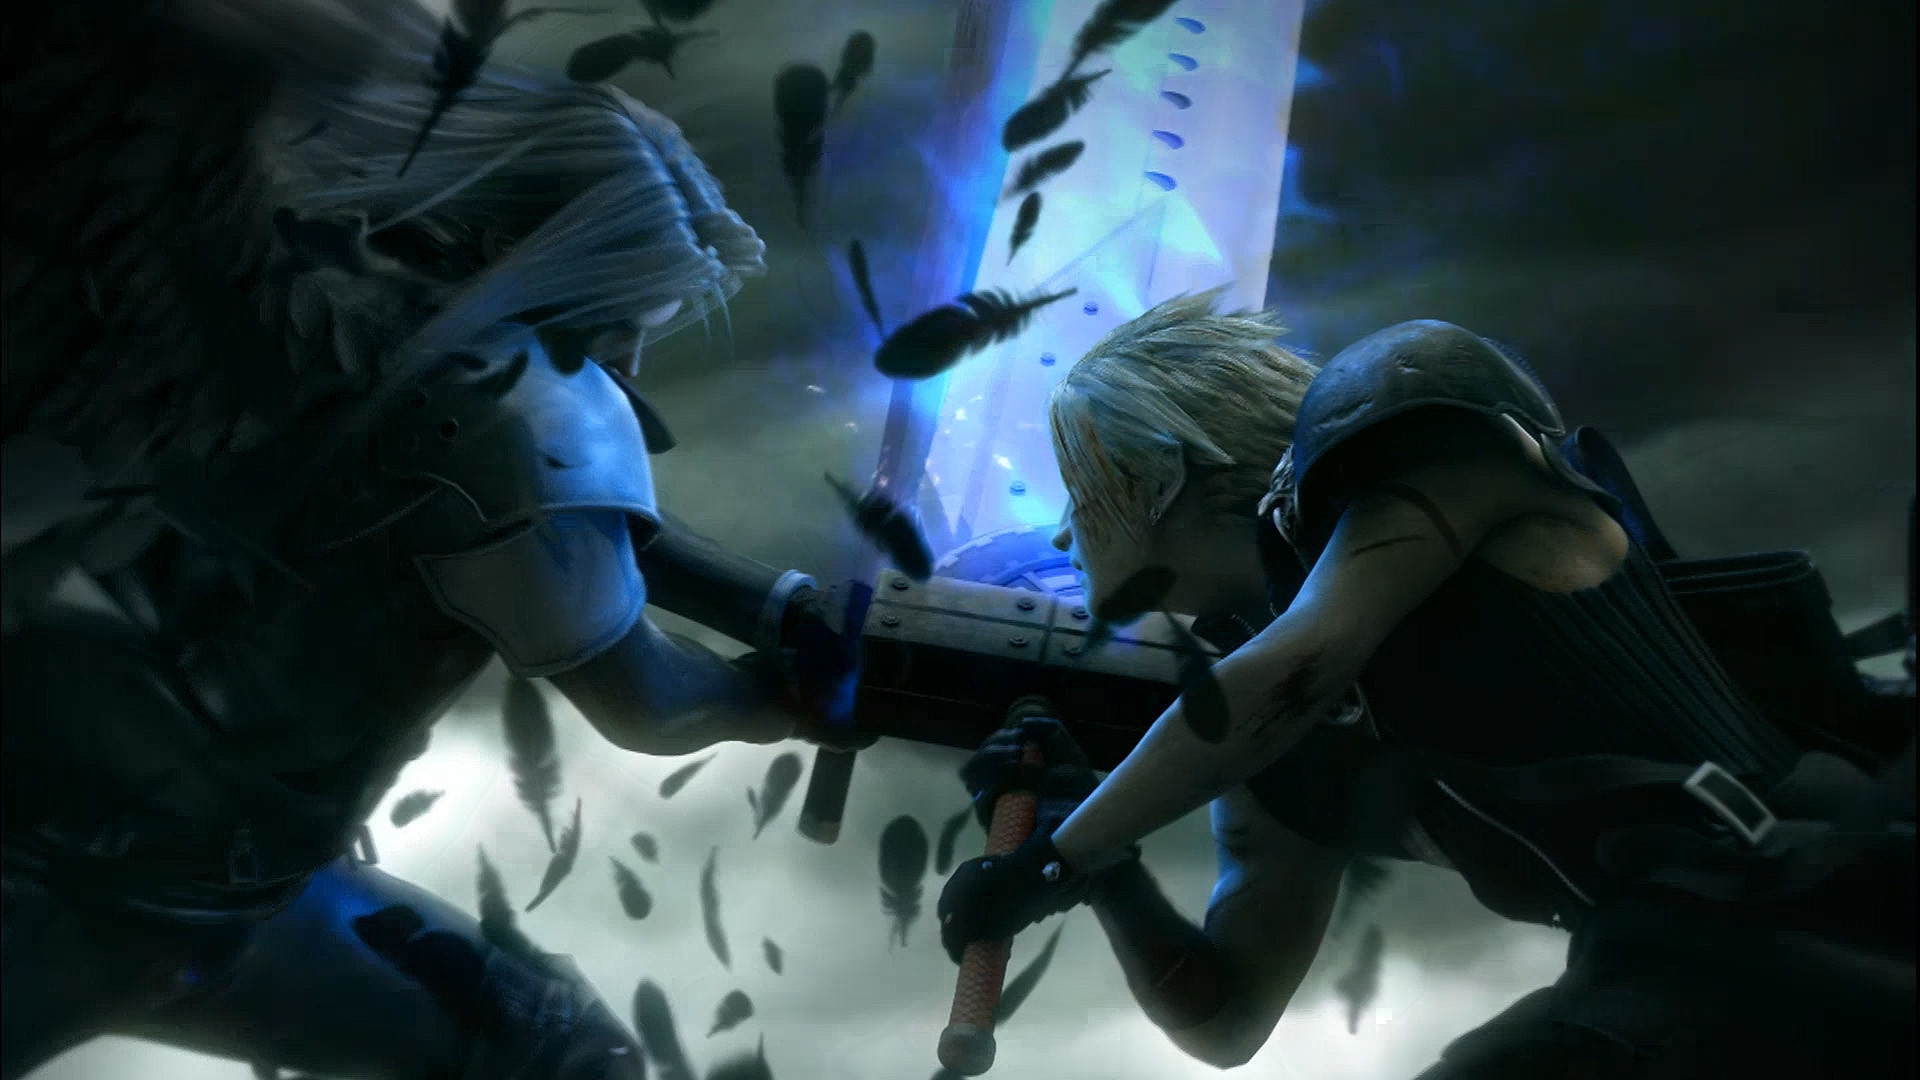 Final Fantasy – Cloud And Sephiroth